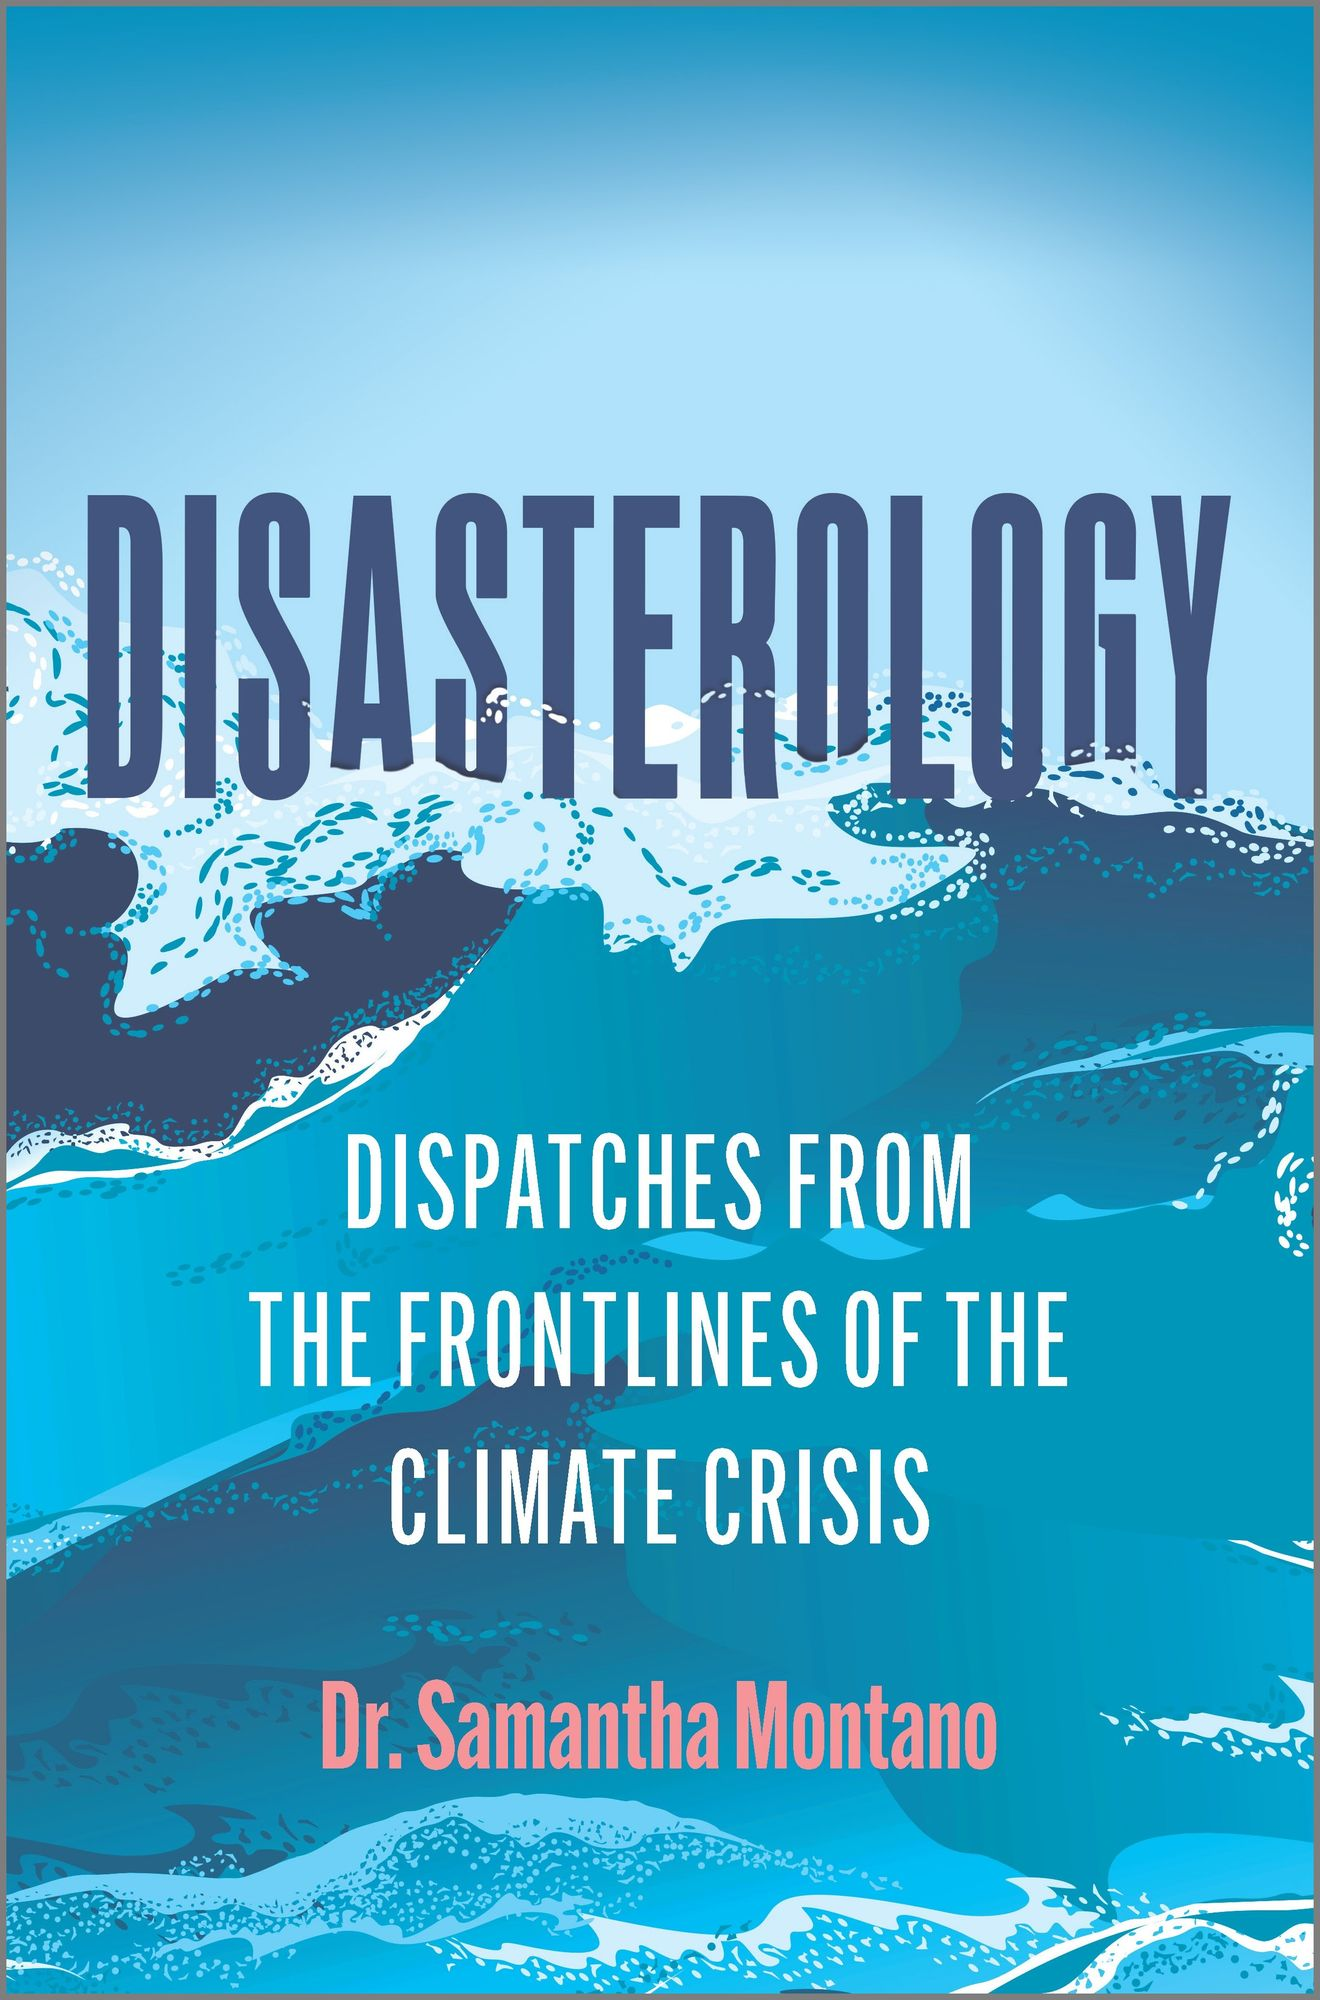 Disasterology by Dr. Samantha Montano